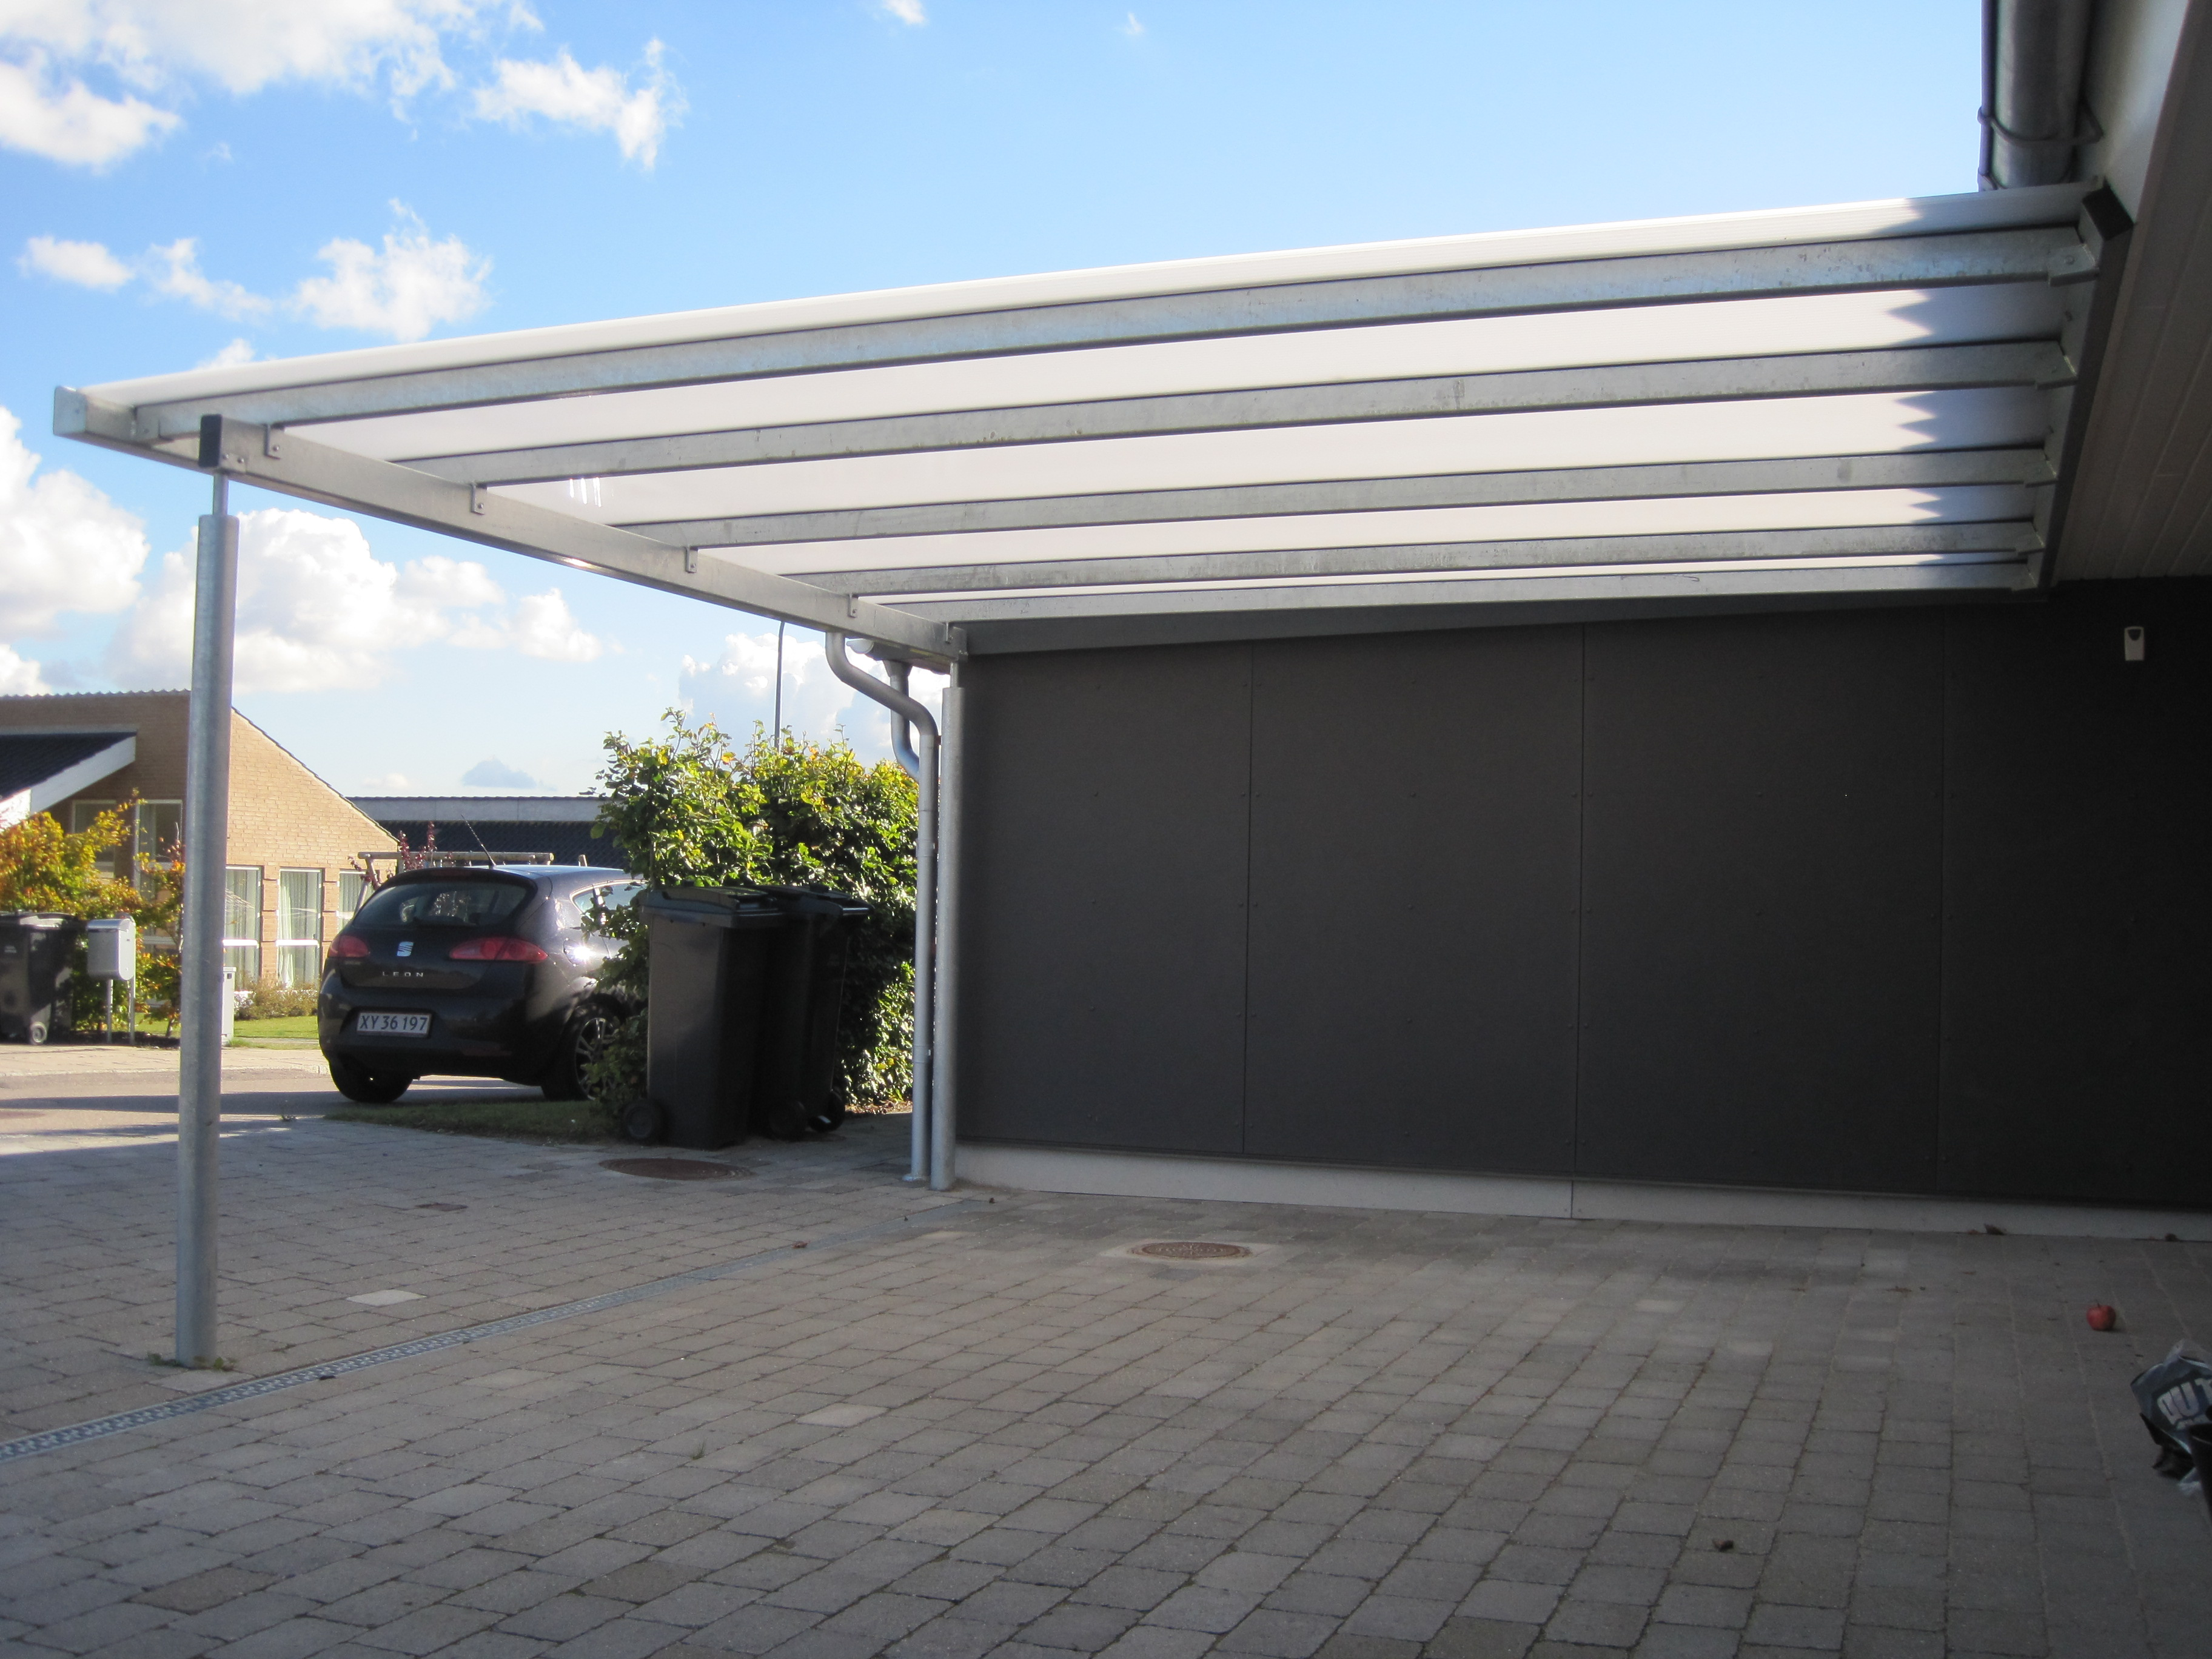 galerie stahlcarport pultdach carport nord carport. Black Bedroom Furniture Sets. Home Design Ideas